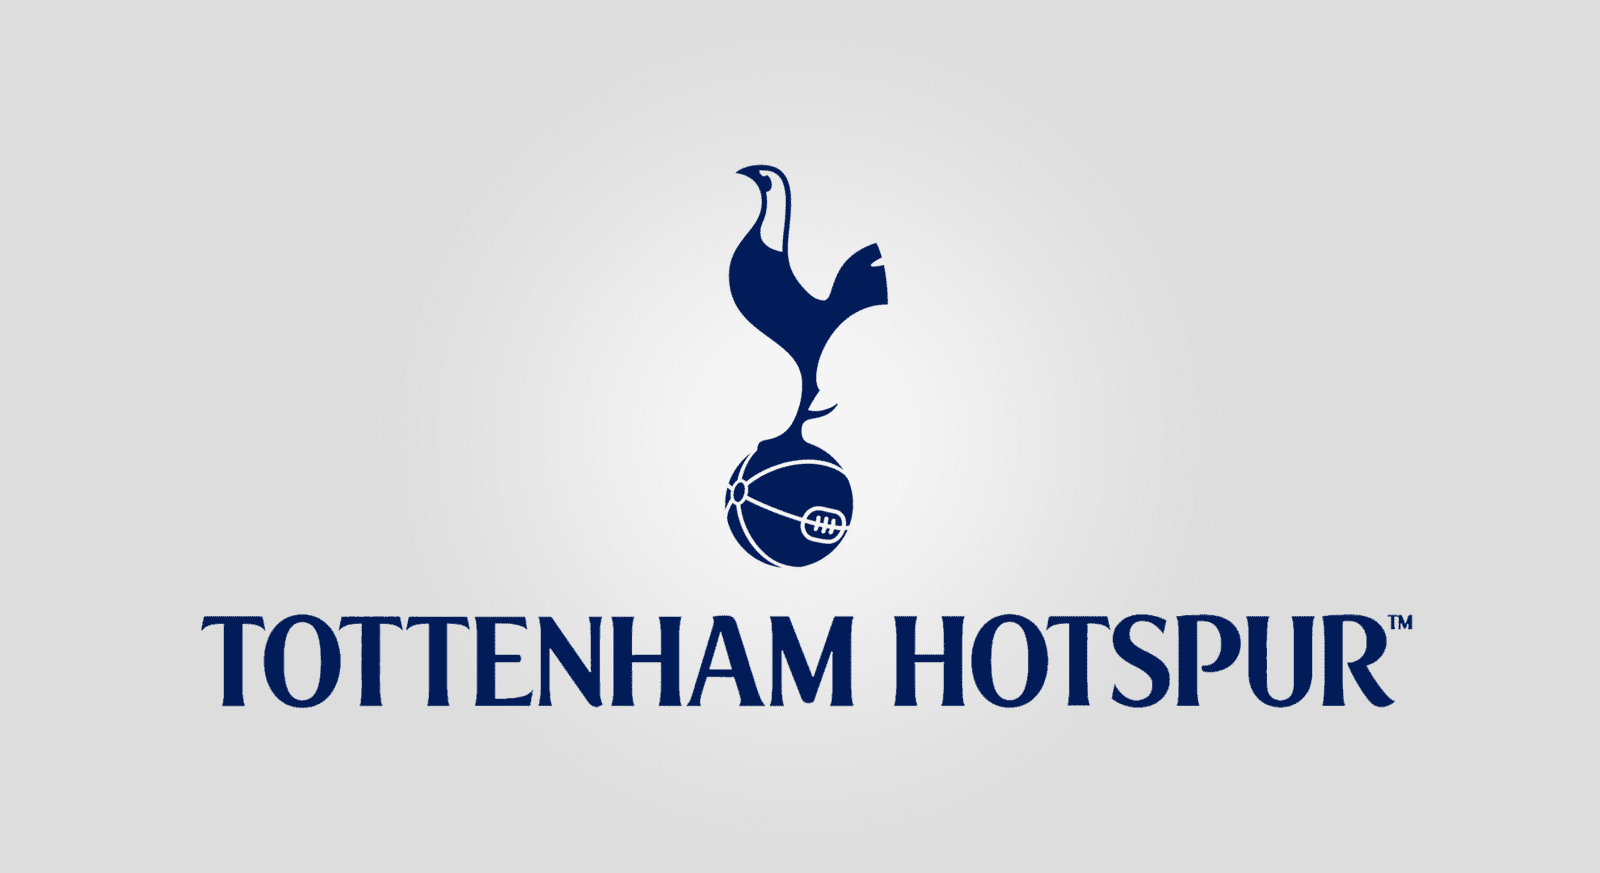 Image property of the Tottenham Hotspurs.